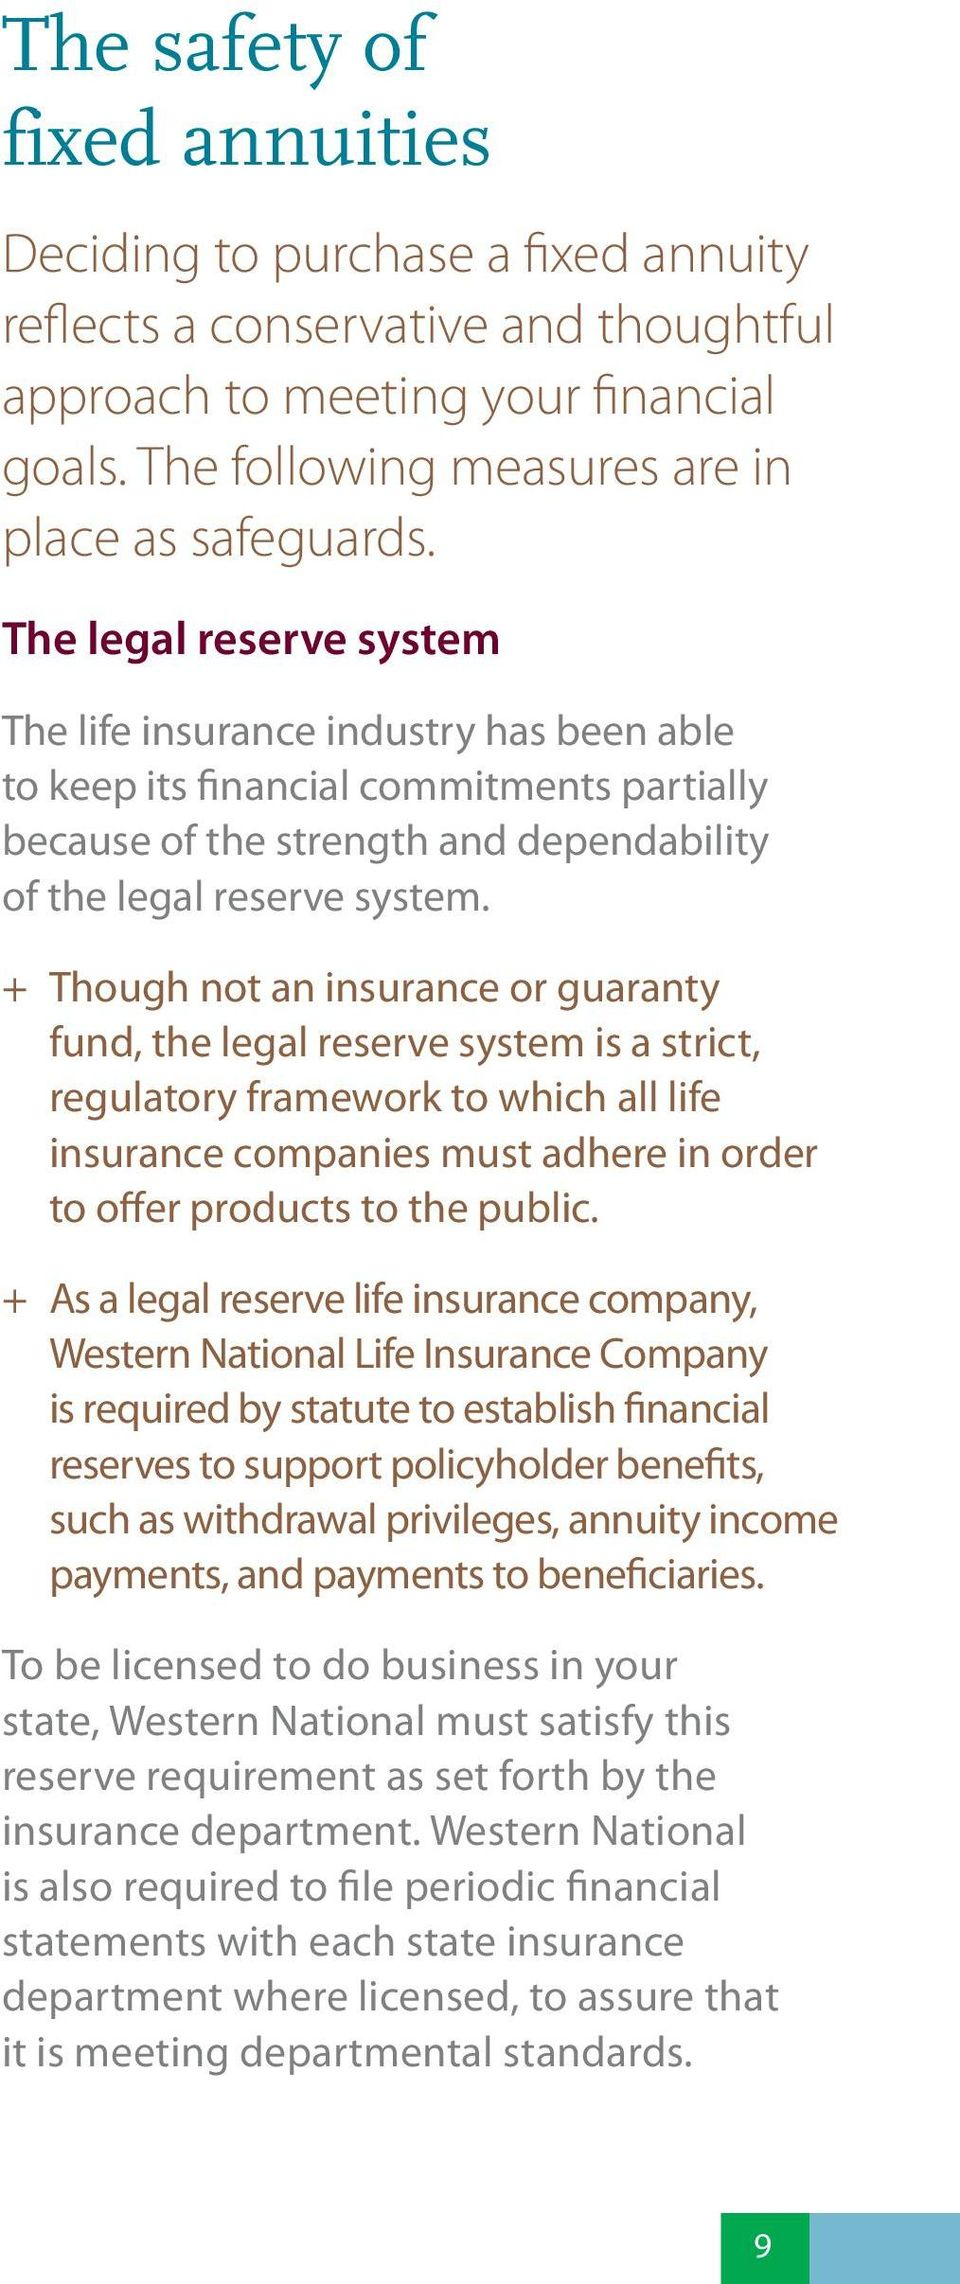 ++ Though not an insurance or guaranty fund, the legal reserve system is a strict, regulatory framework to which all life insurance companies must adhere in order to offer products to the public.